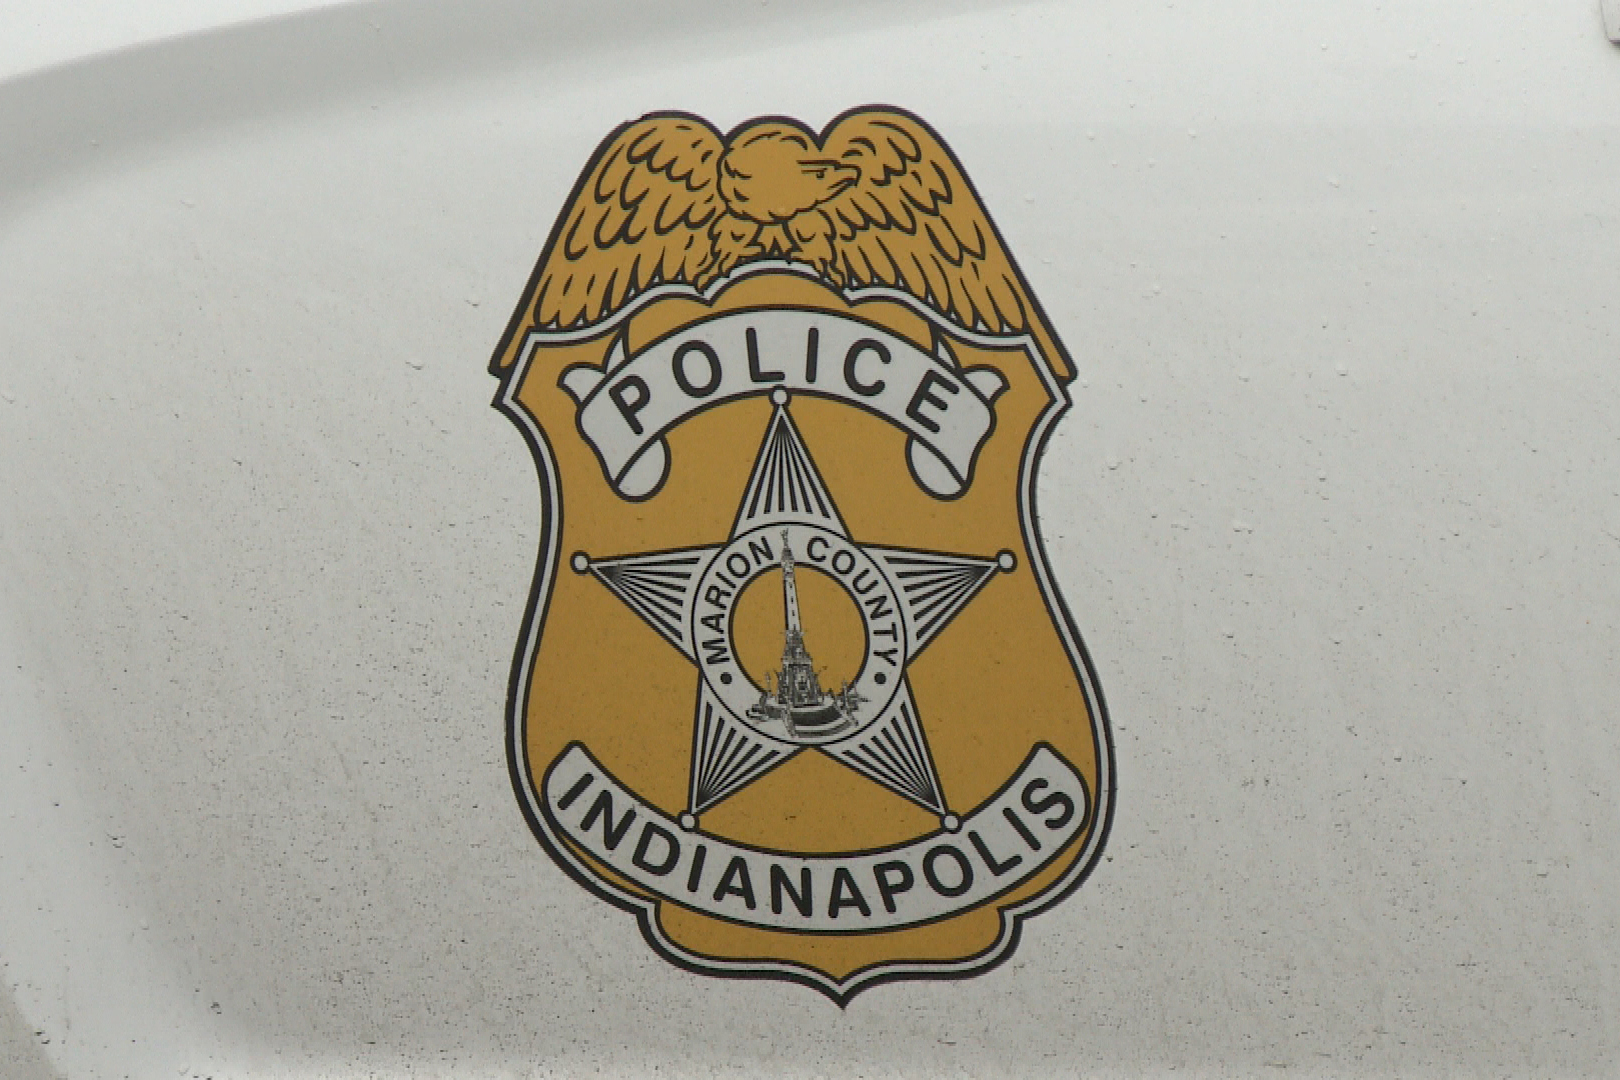 IMPD-shield-logo-on-car-close-up.jpg